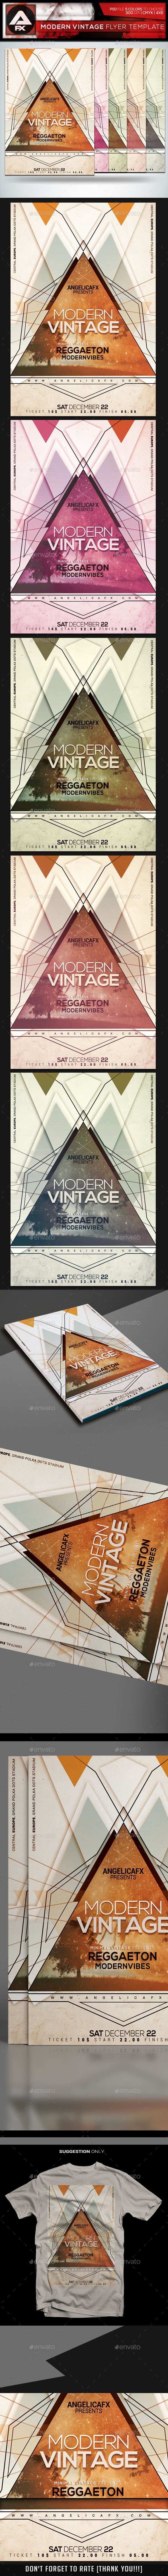 Modern Vintage Flyer Template - Flyers Print Templates